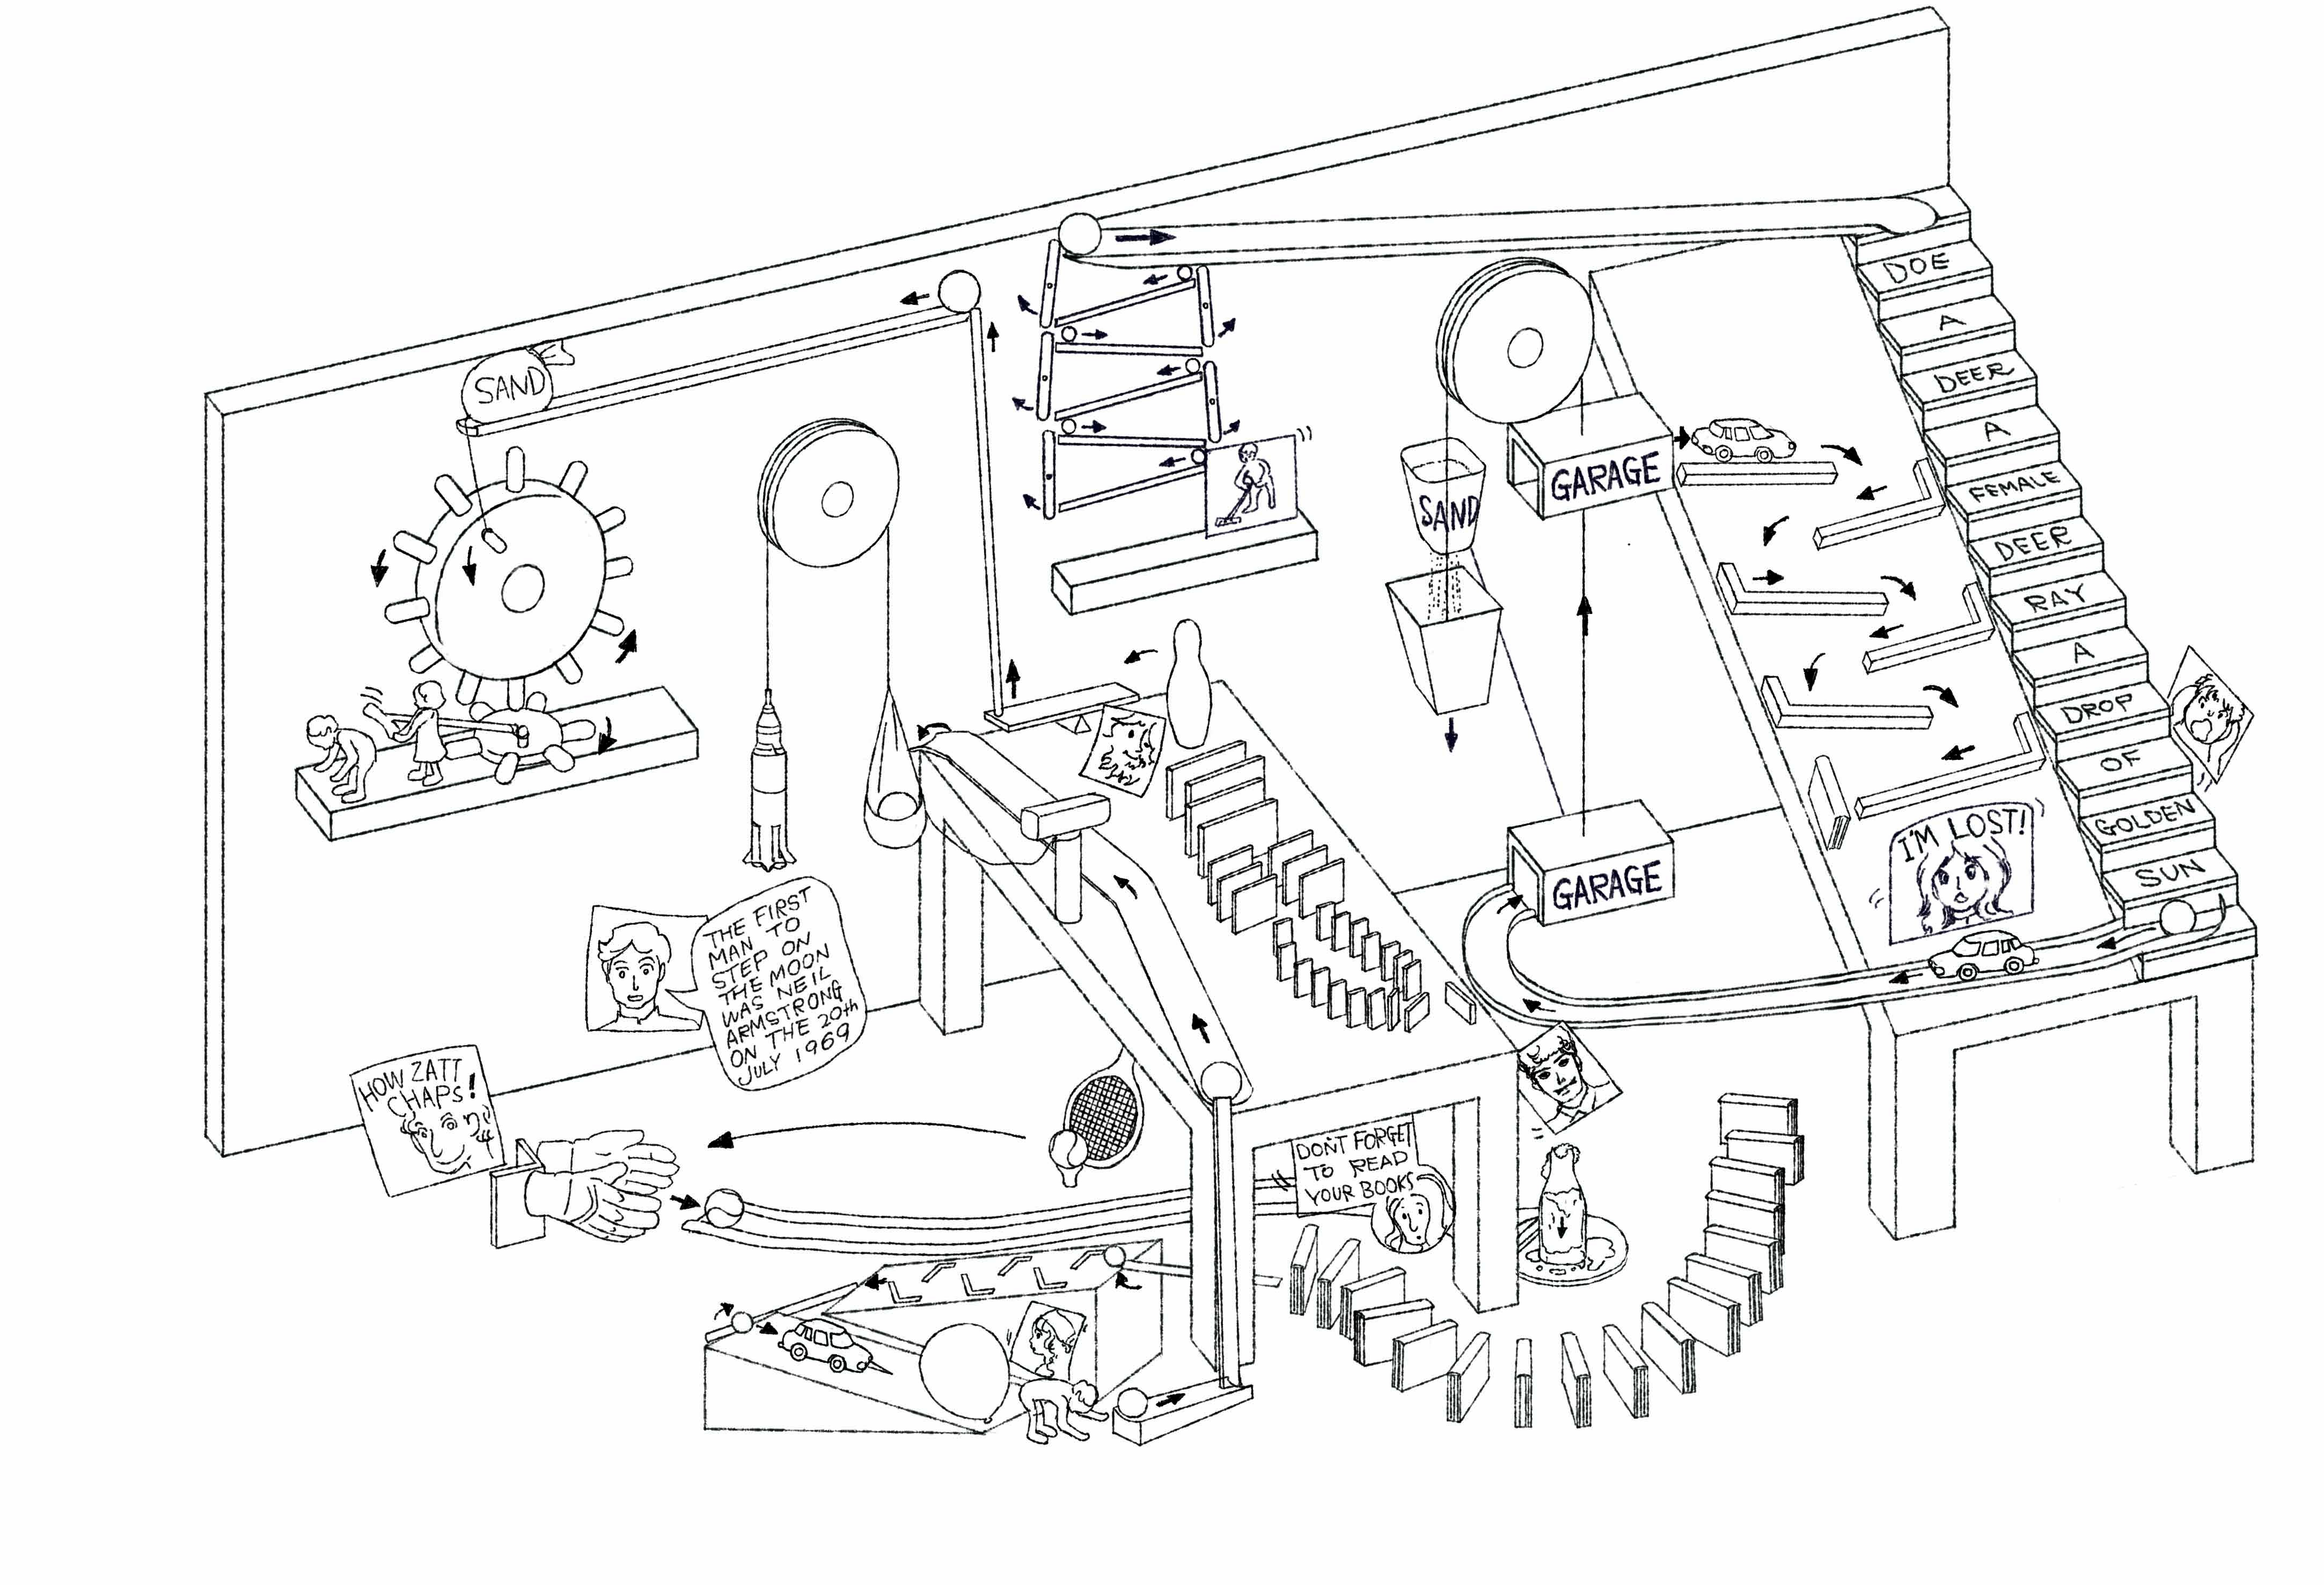 Rube Goldberg Drawing Of Parts Pictures To Pin On